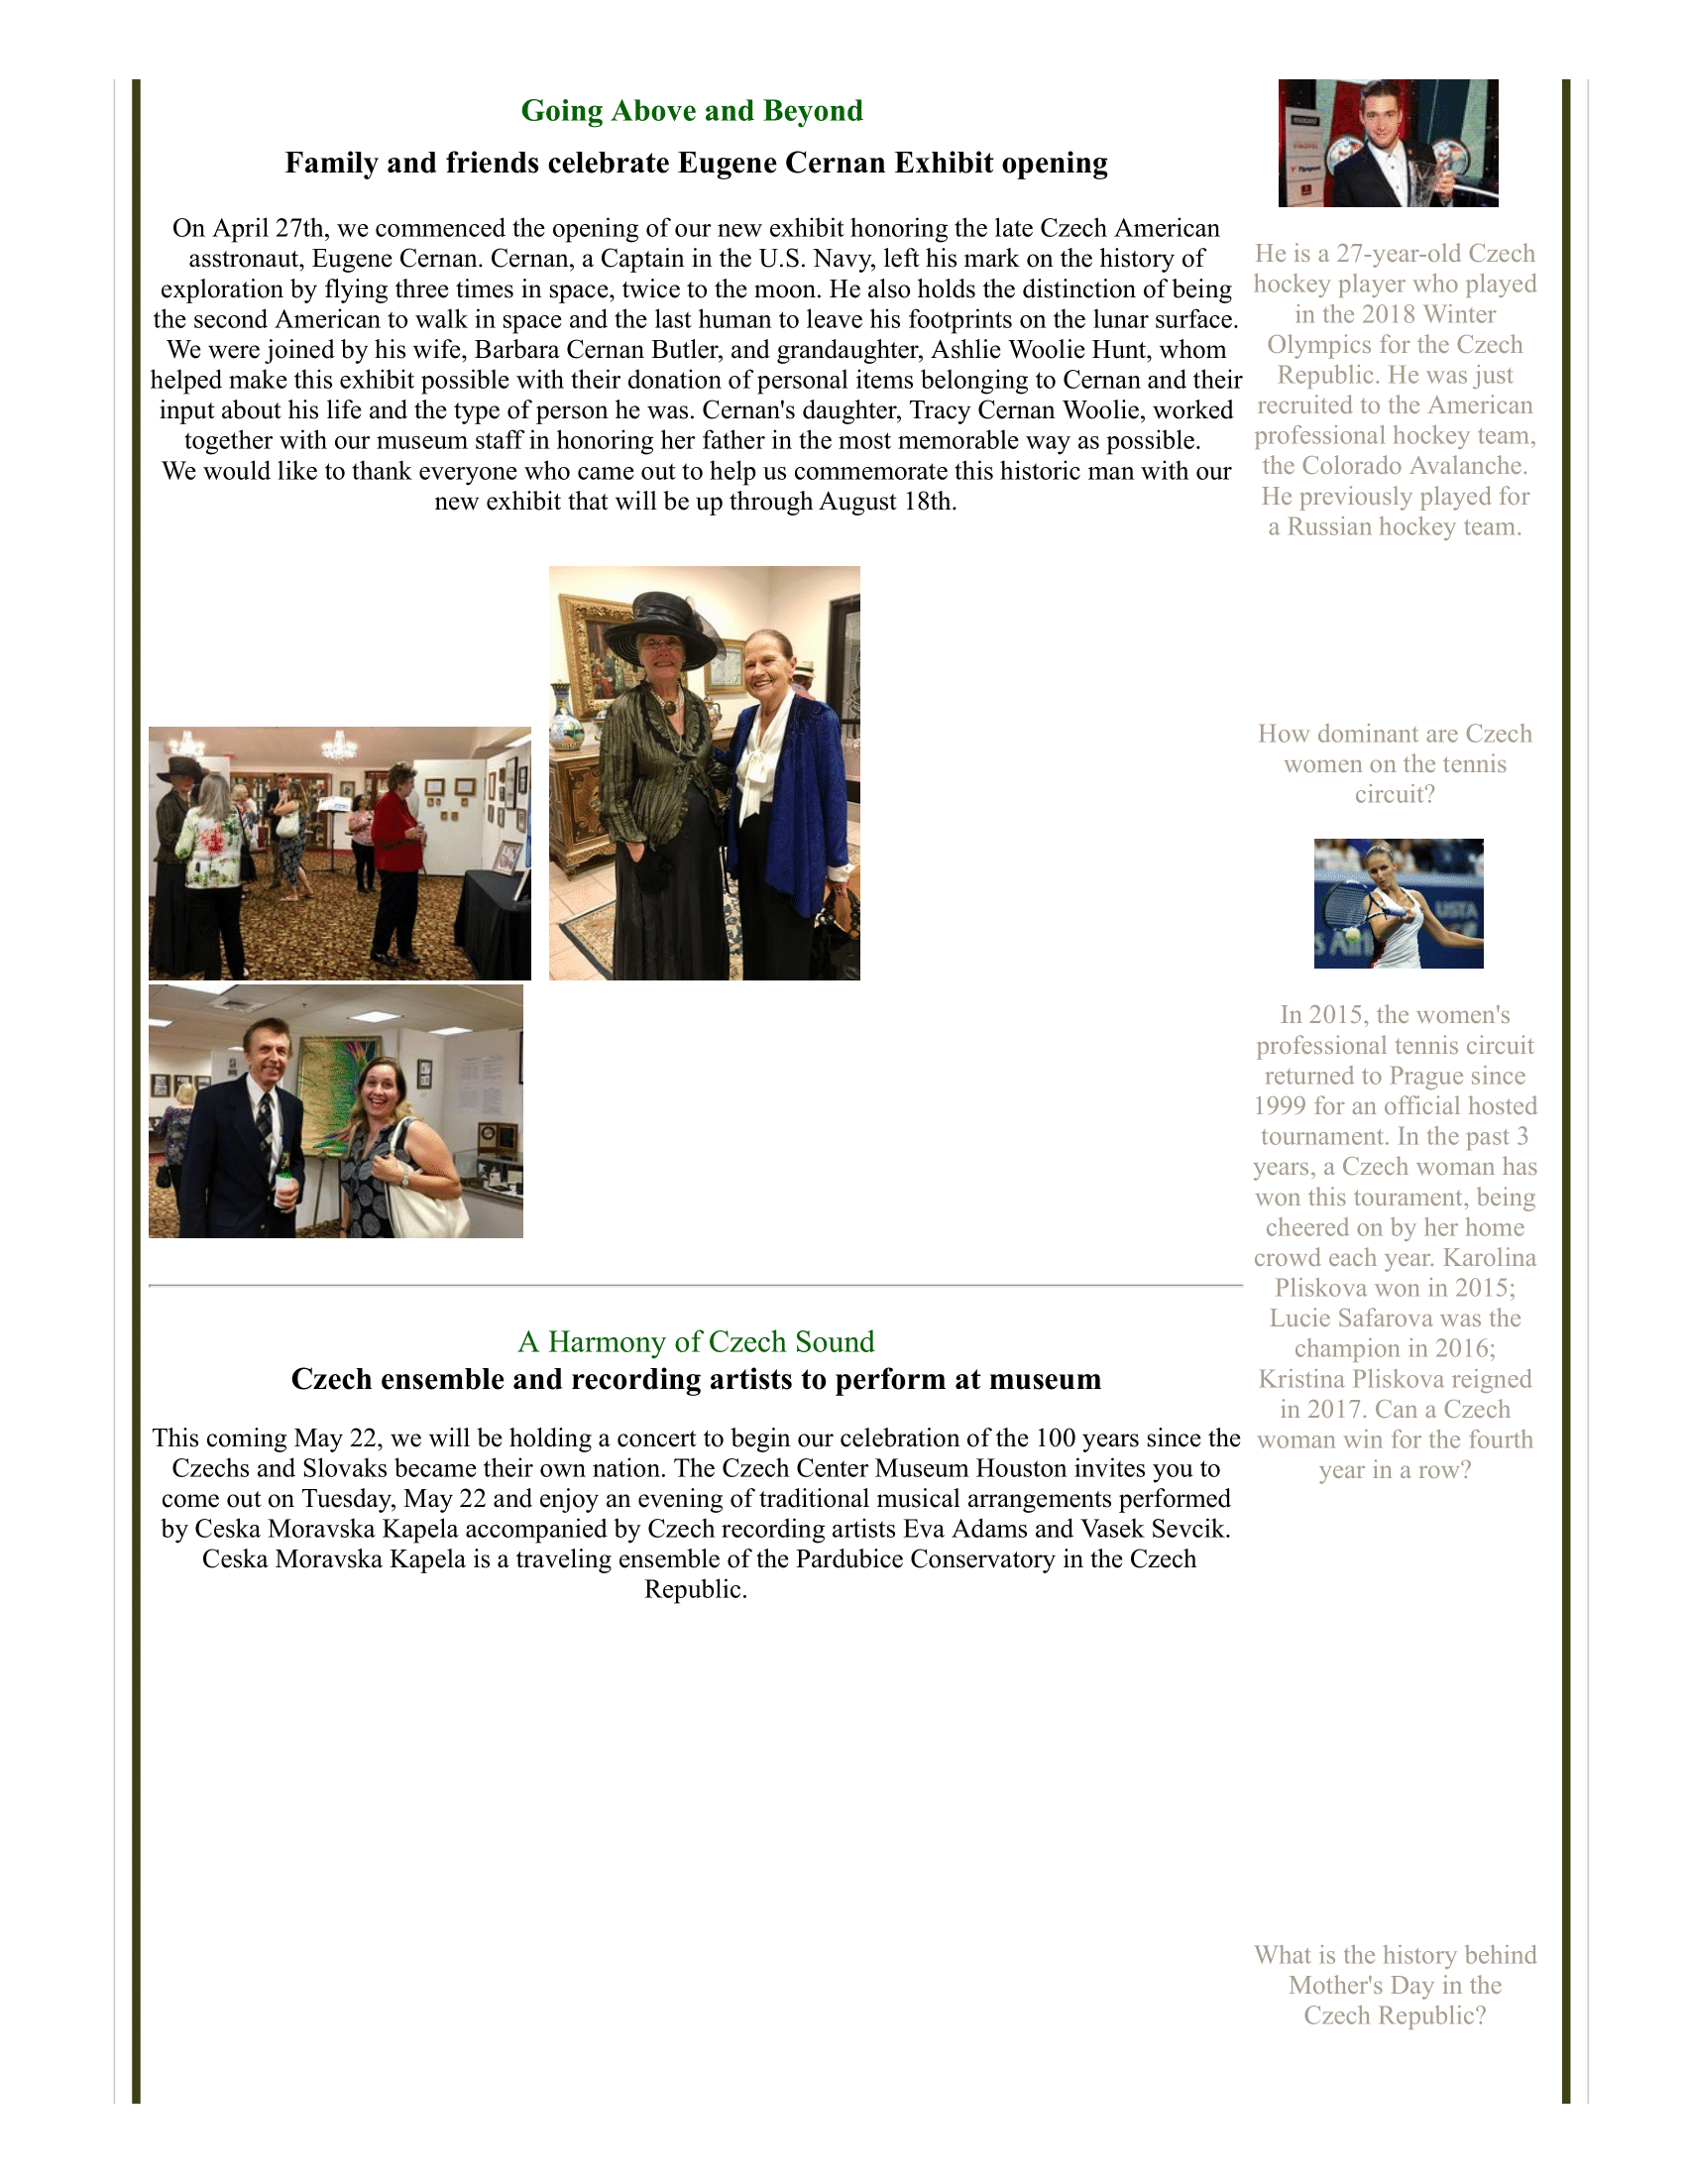 Czech Center Museum Houston Mail - April 2018 CCMH Newsletter-2.png